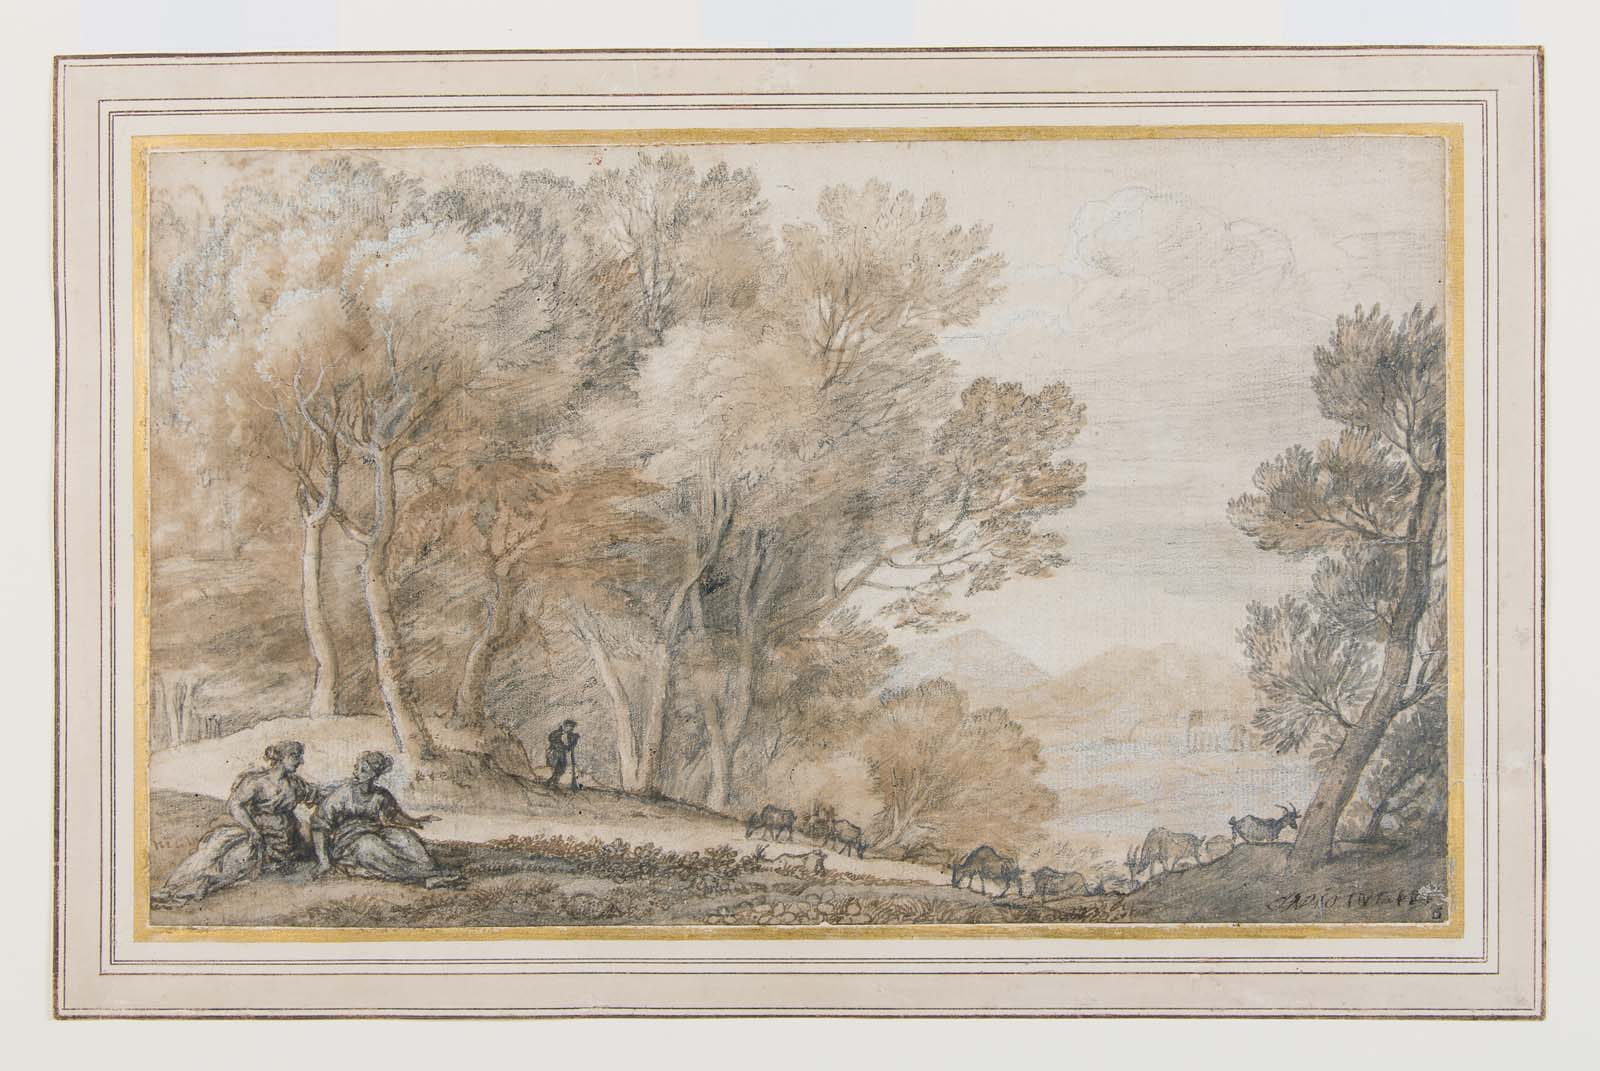 colour sketch of a landscape with trees, two reclining women in the foreground and a shepherd leaning on a stick overseeing a flock of goats in the distance